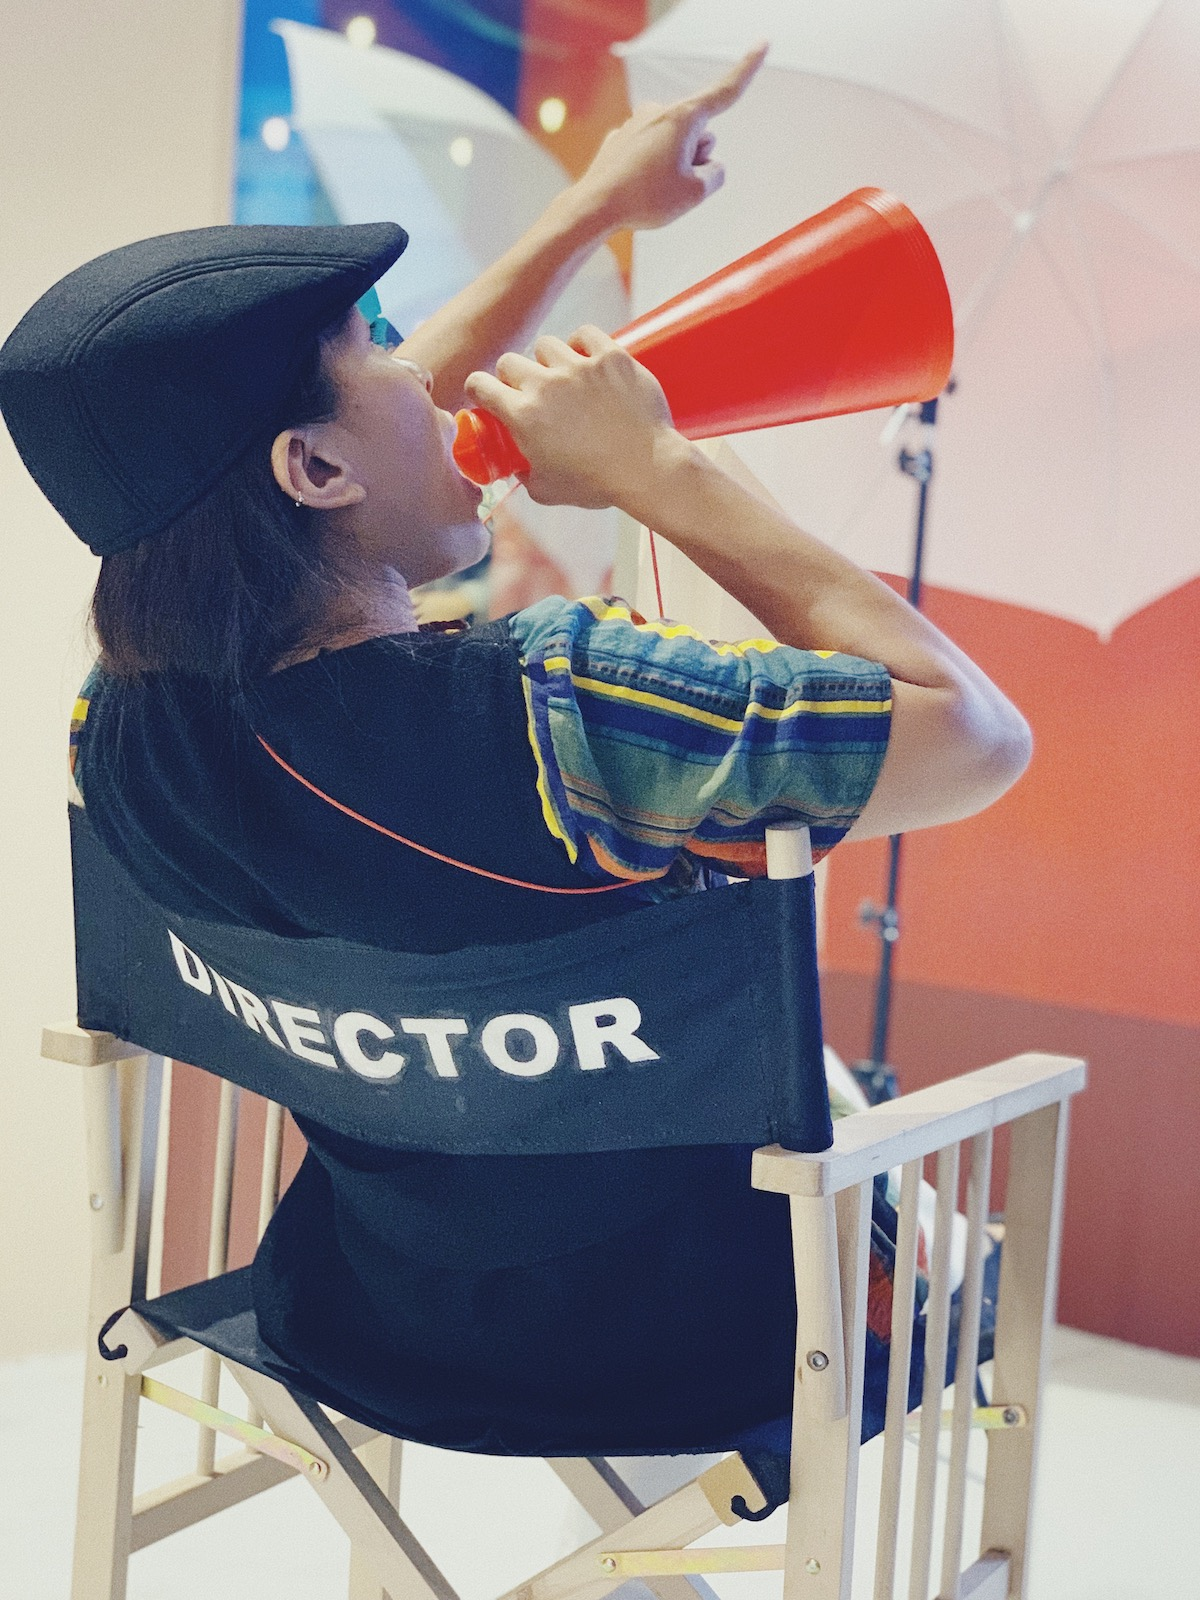 Voice actor: image of a director directing